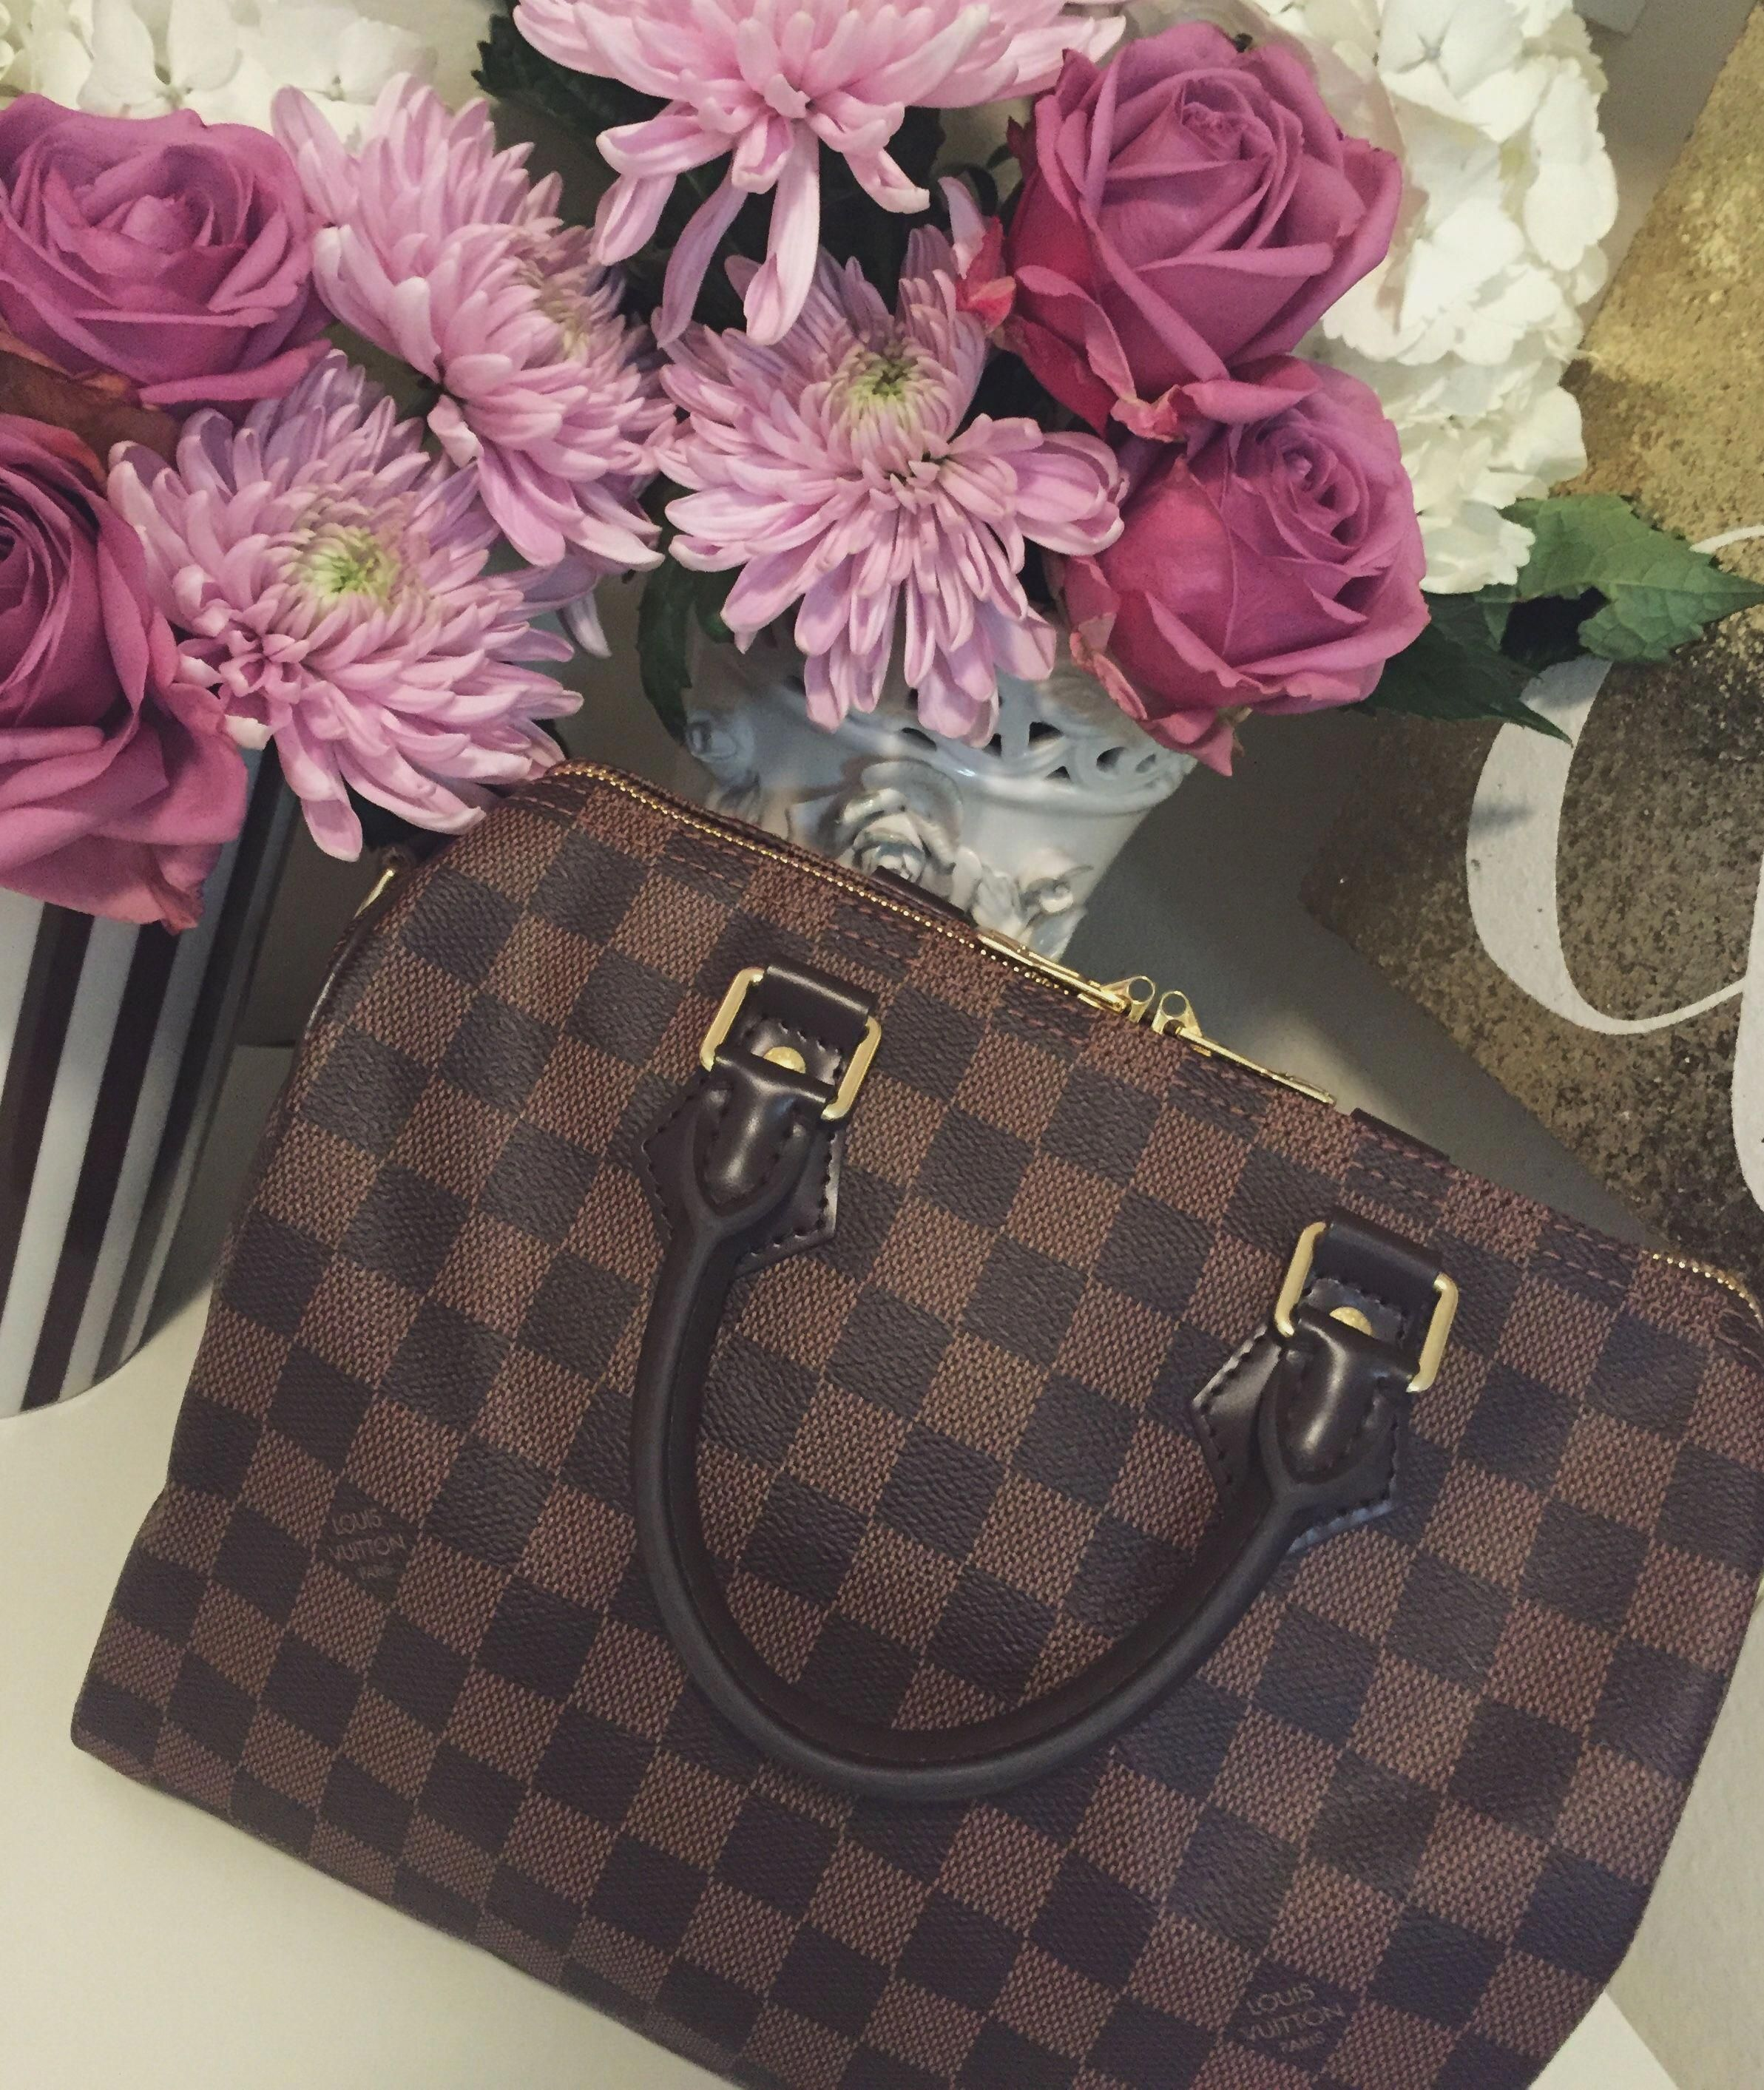 98a405926868 louis vuitton handbags for women under 100 dollars #Louisvuittonhandbags